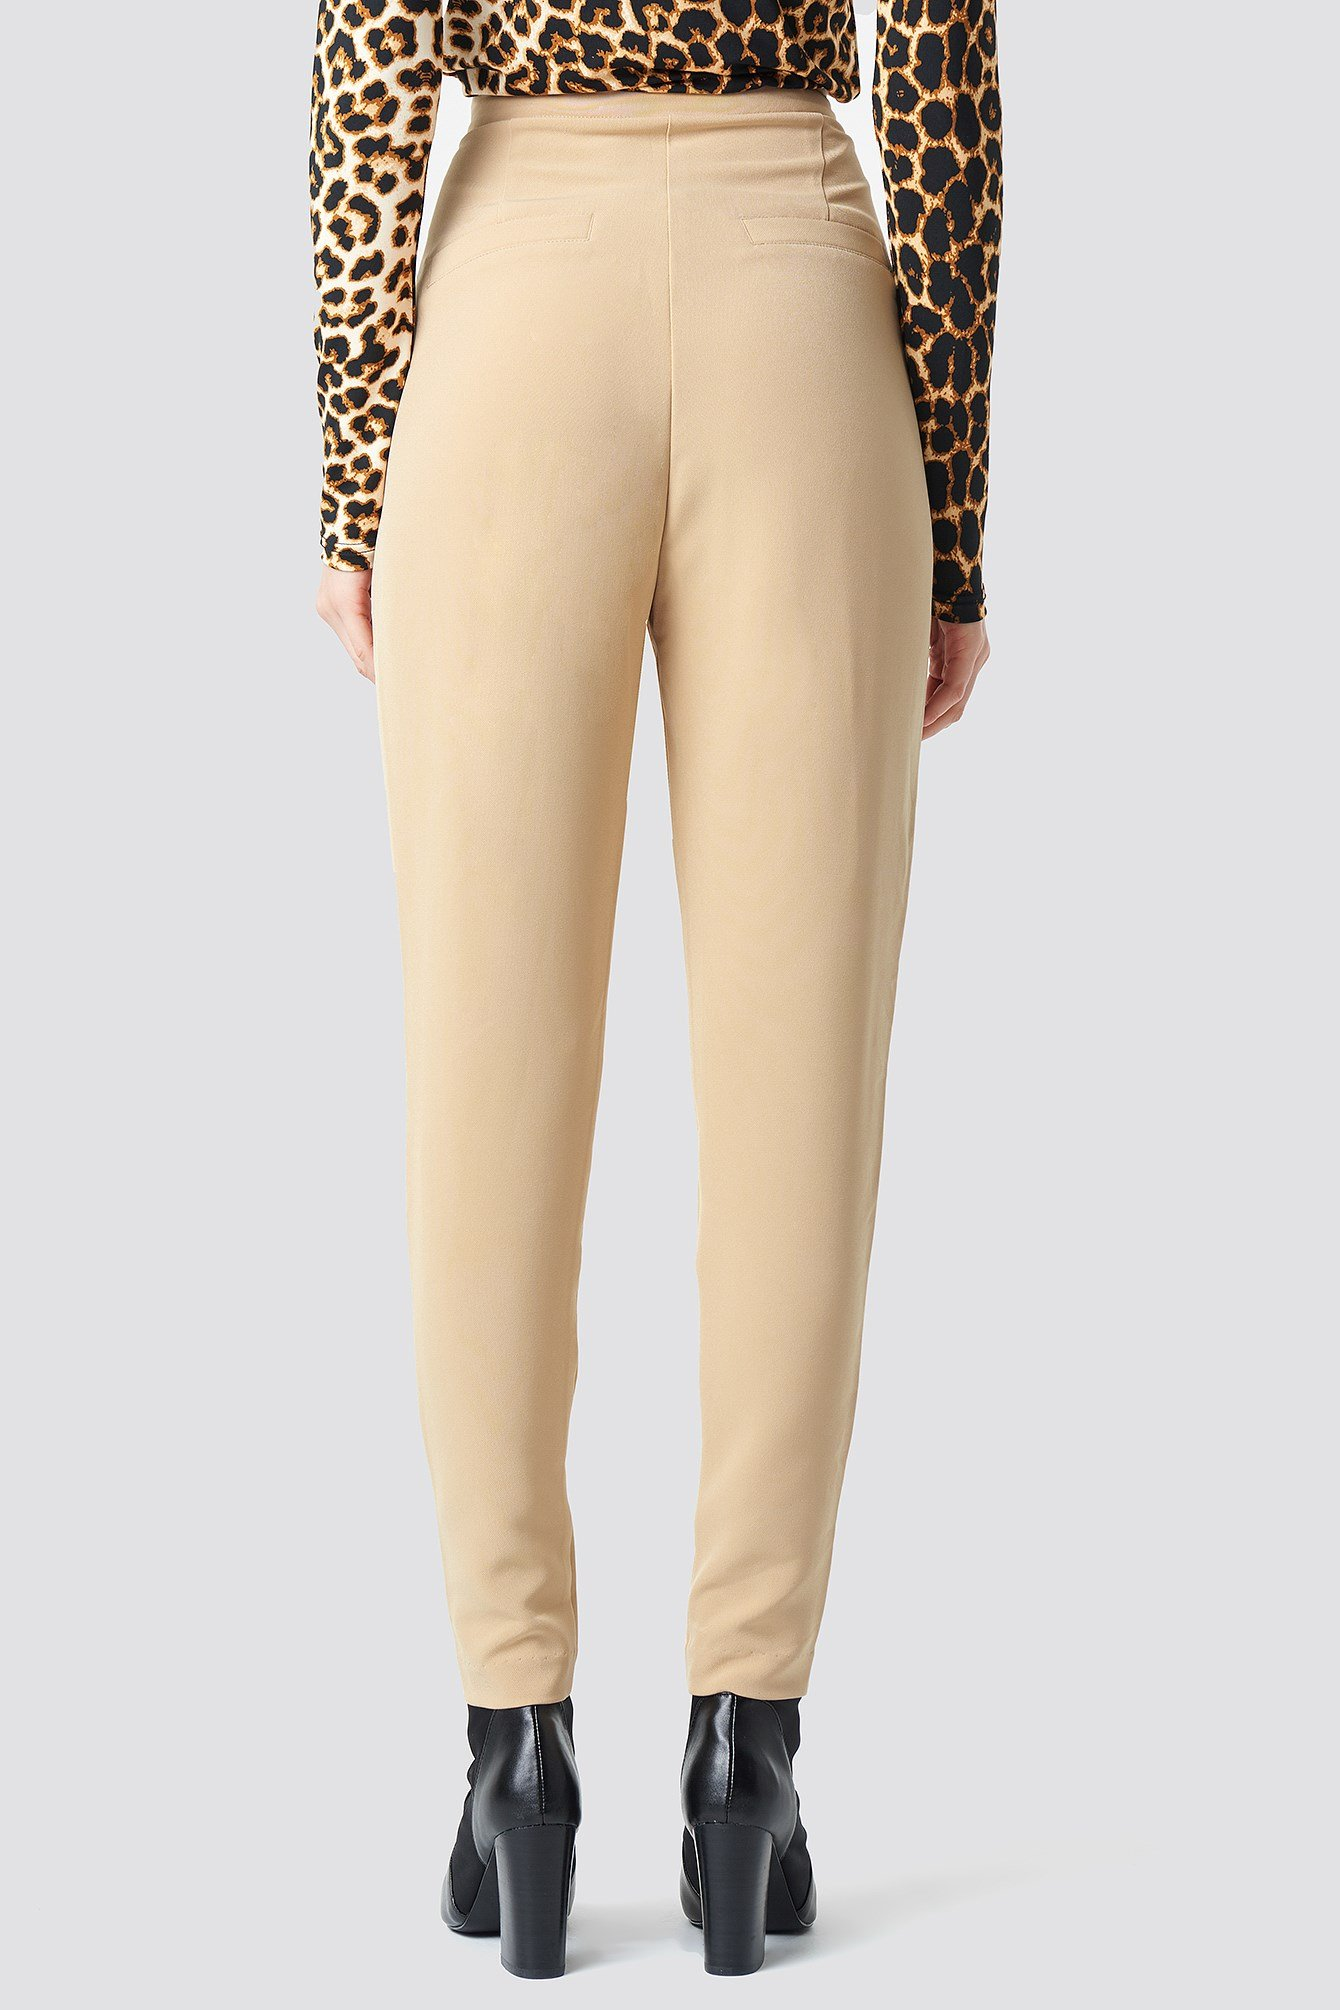 Knot Suiting Pants NA-KD.COM